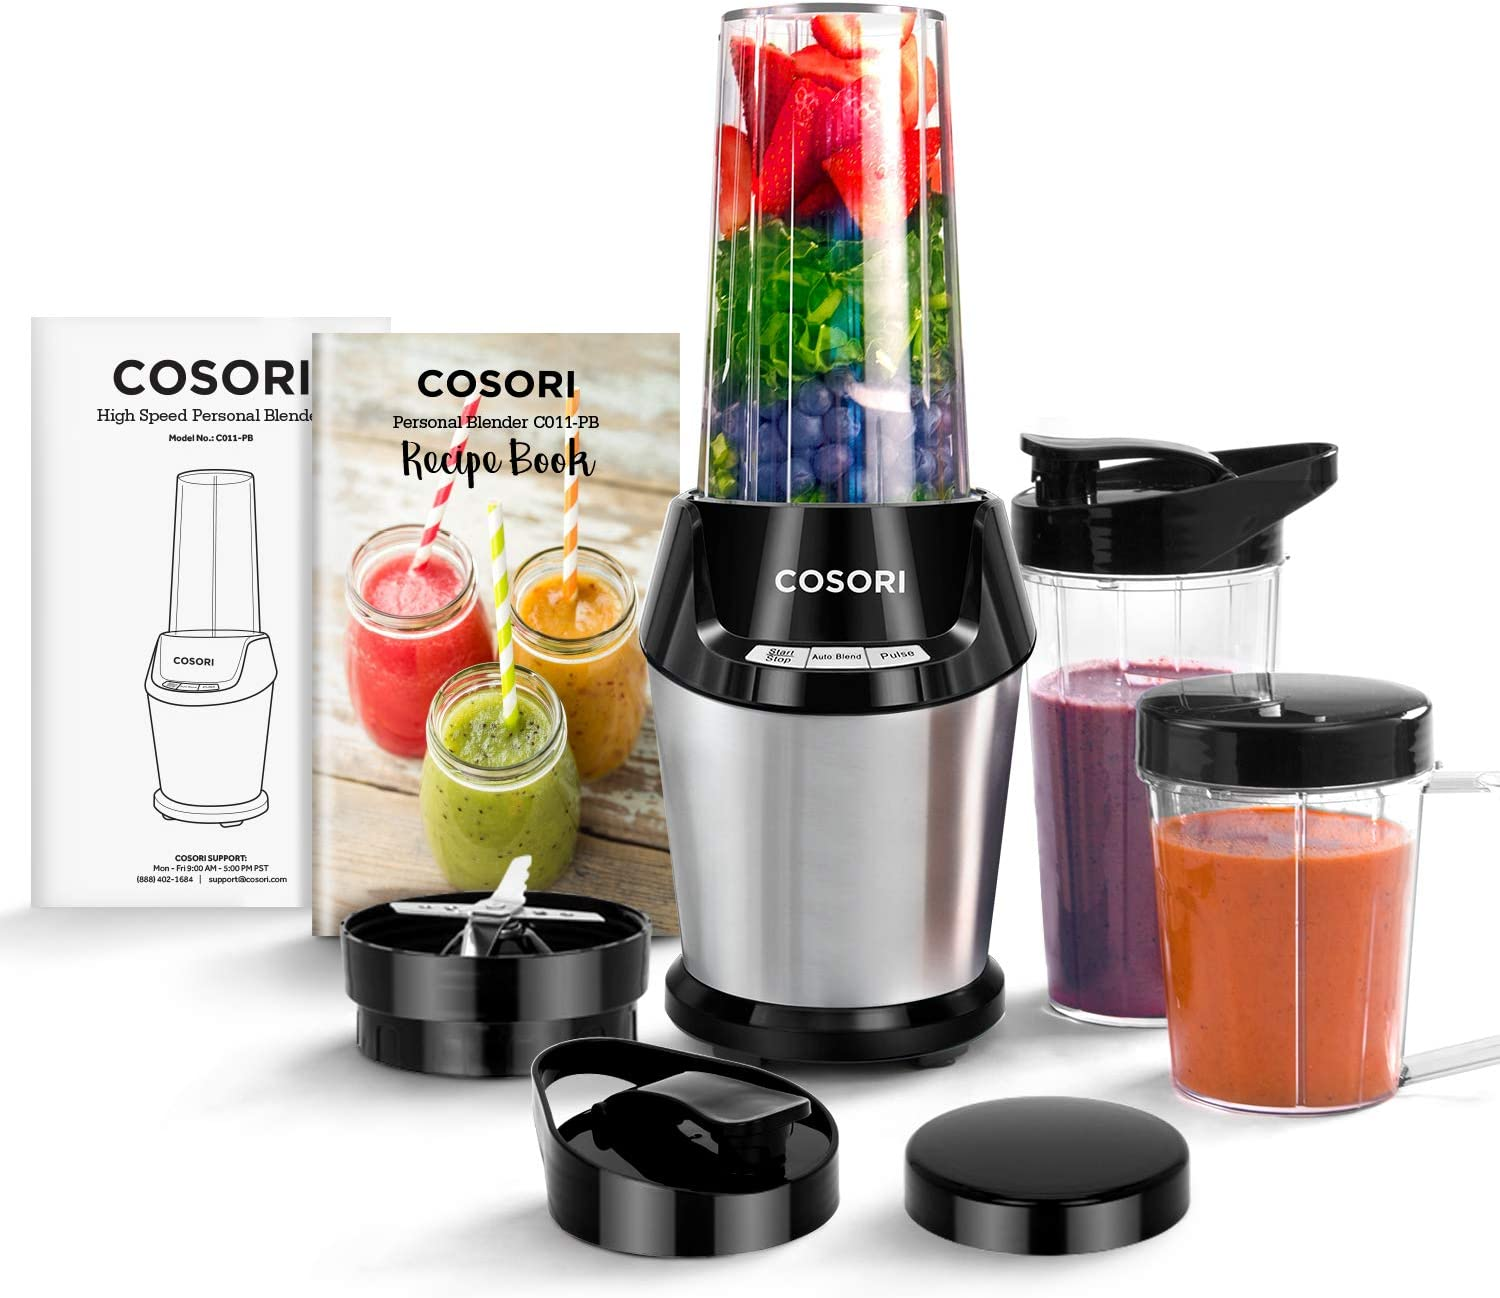 COSORI Blender for Shakes and Smoothies, 10-Piece 800W Auto-Blend High Speed Smoothie Blender/Mixer for Ice Crushing Frozen Fruits, 2x 24oz Cups, 1x 12oz Cup, ETL Listed/FDA Compliant